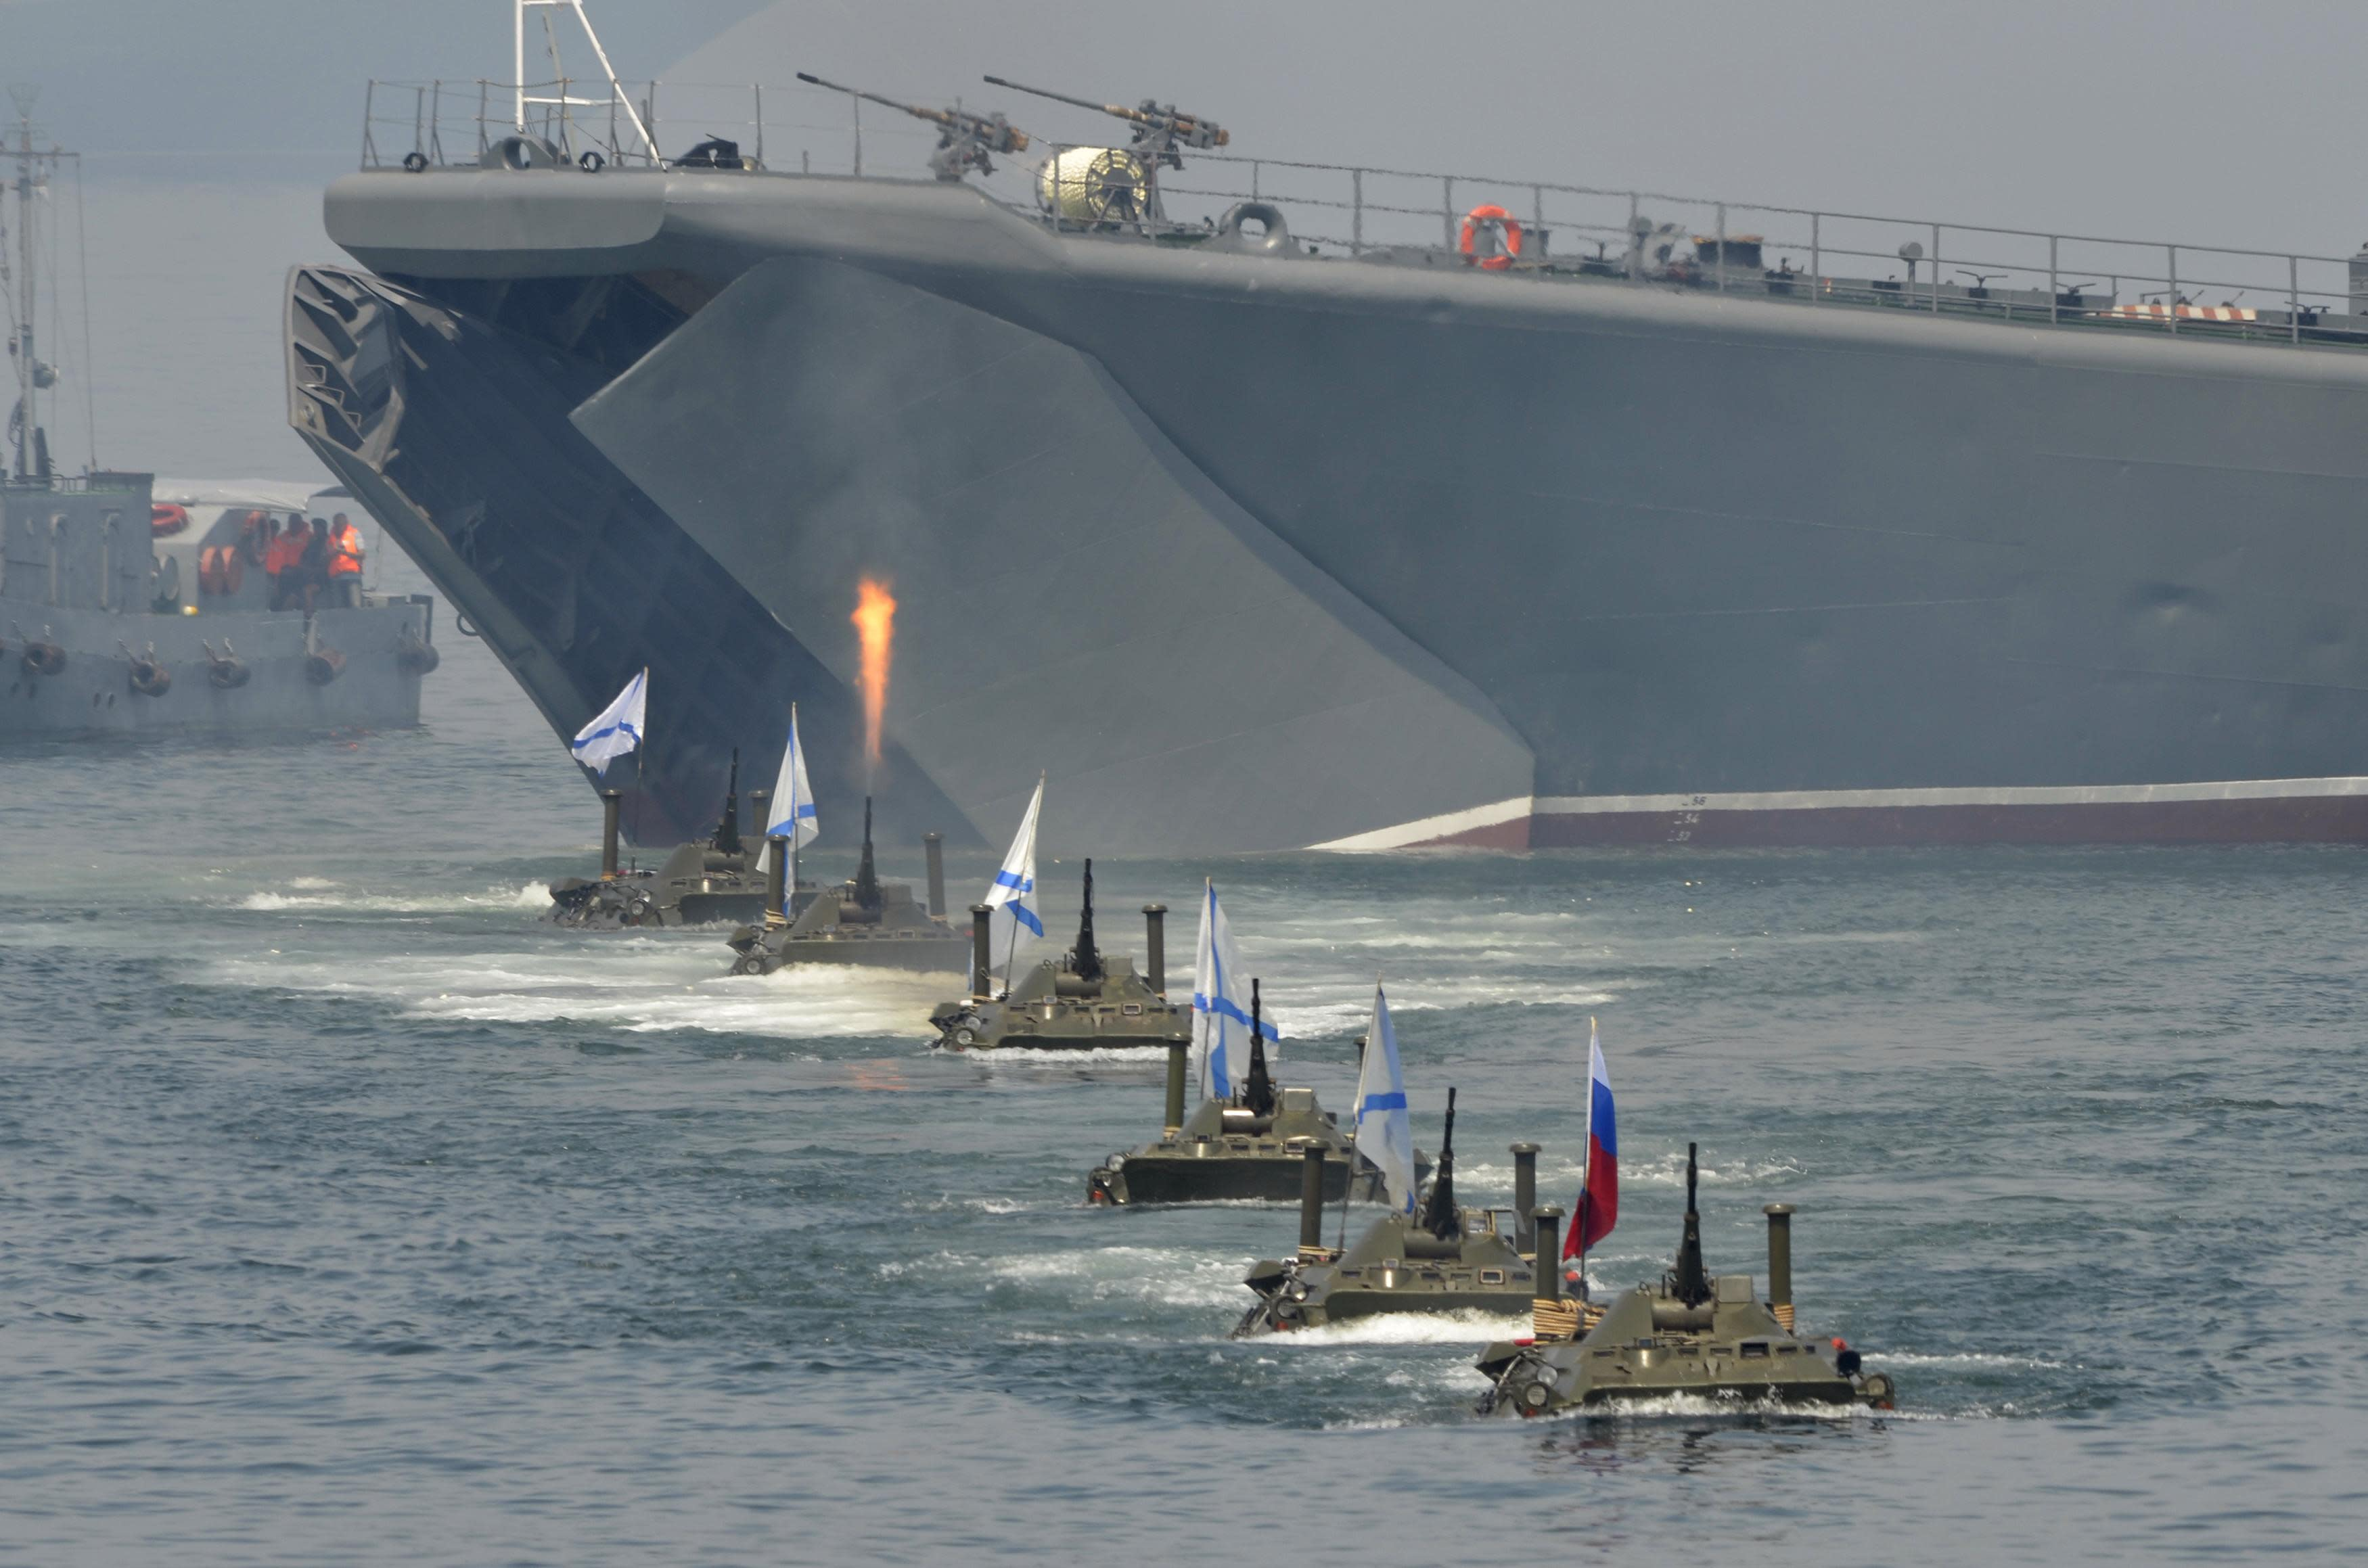 Russian amphibious vehicles drive in formation during celebrations to mark Navy Day in the far eastern Russian port of Vladivostok July 27, 2014. REUTERS/Yuri Maltsev (RUSSIA - Tags: POLITICS MILITARY ANNIVERSARY)